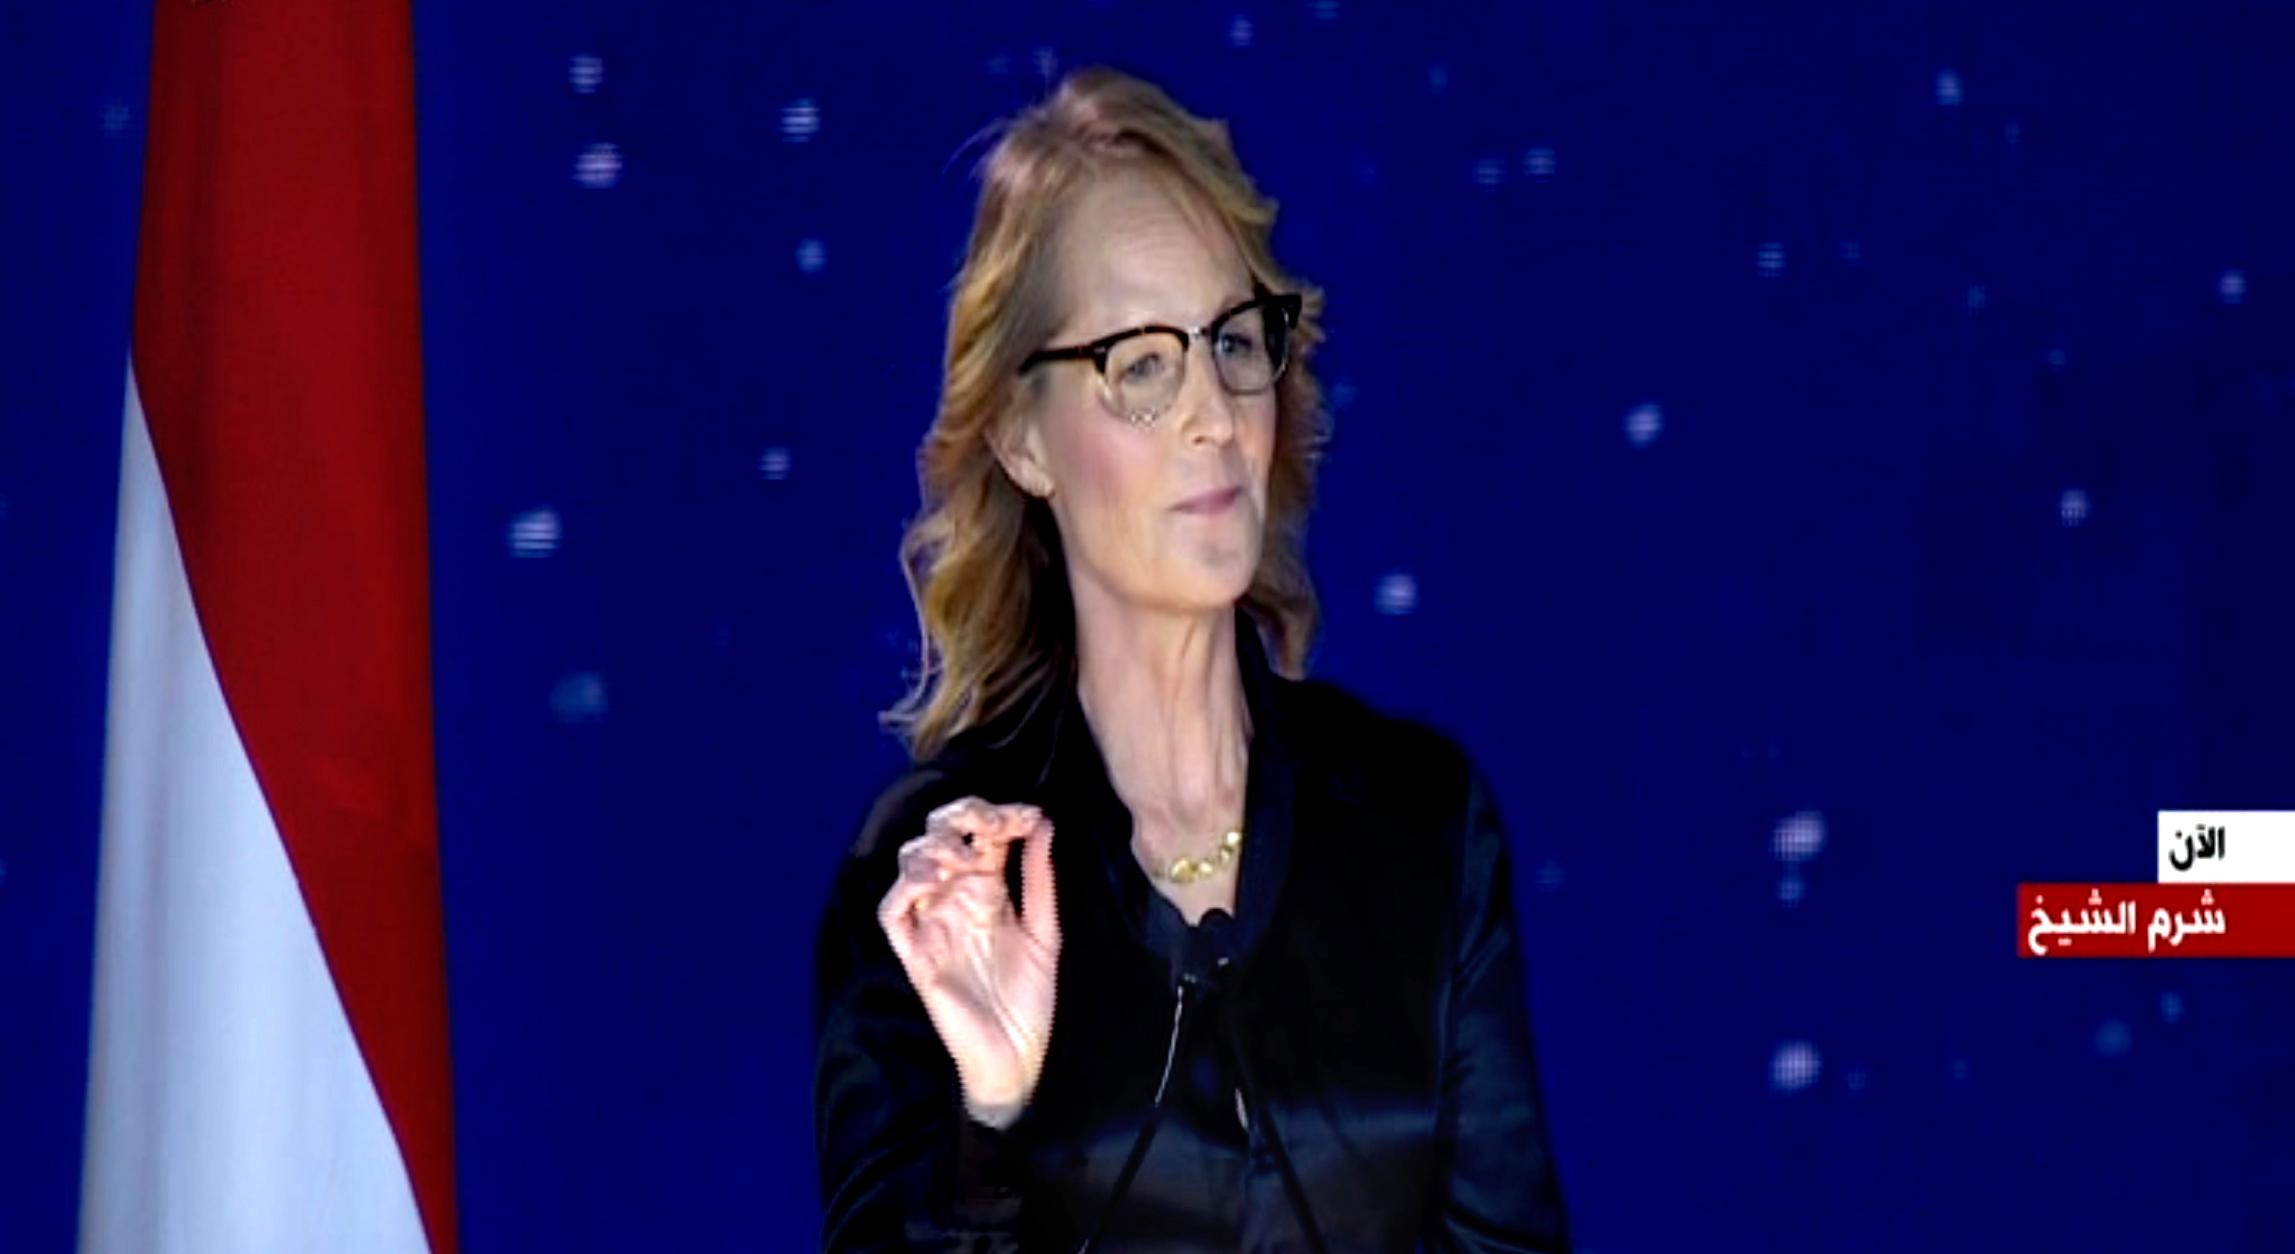 This Nov. 5, 2017 image taken from video, shows American actress Helen Hunt speaking during a government-organized youth conference in the Red Sea resort of Sharm el-Sheikh, Egypt. (AP Photo /CAPITAL BROADCAST CENTER)